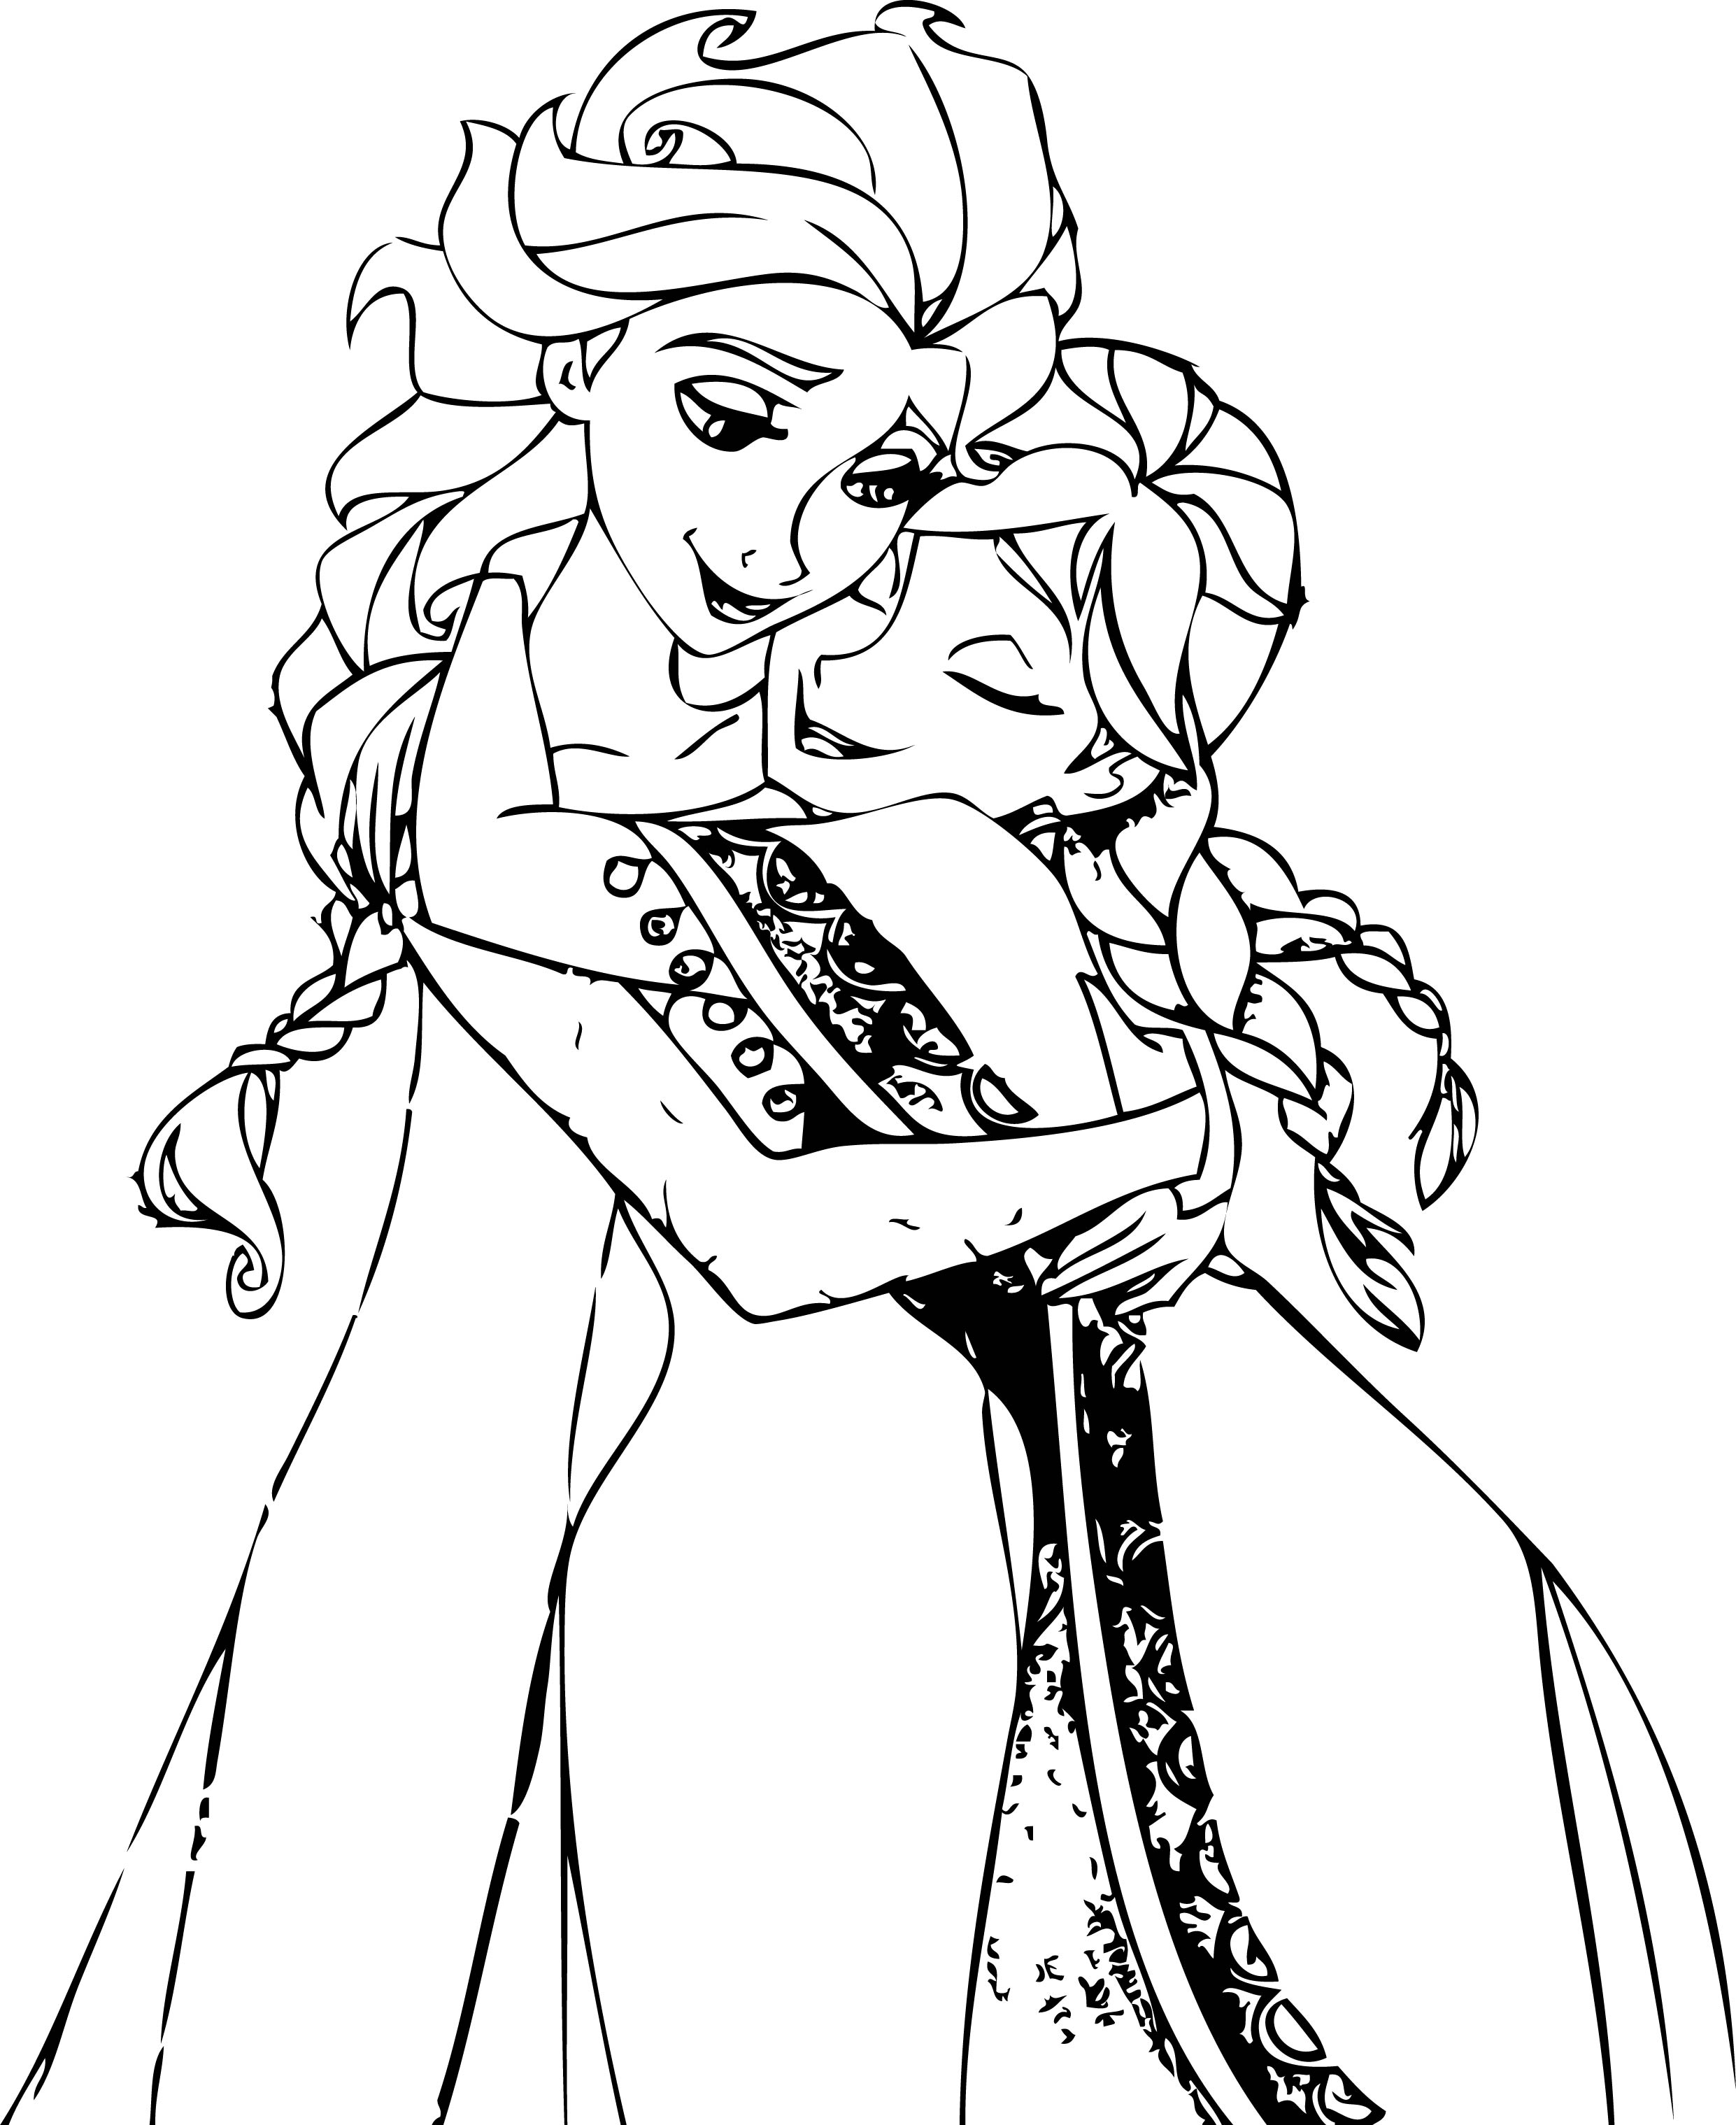 elsa and anna coloring printables free frozen printable coloring activity pages plus free coloring elsa and anna printables